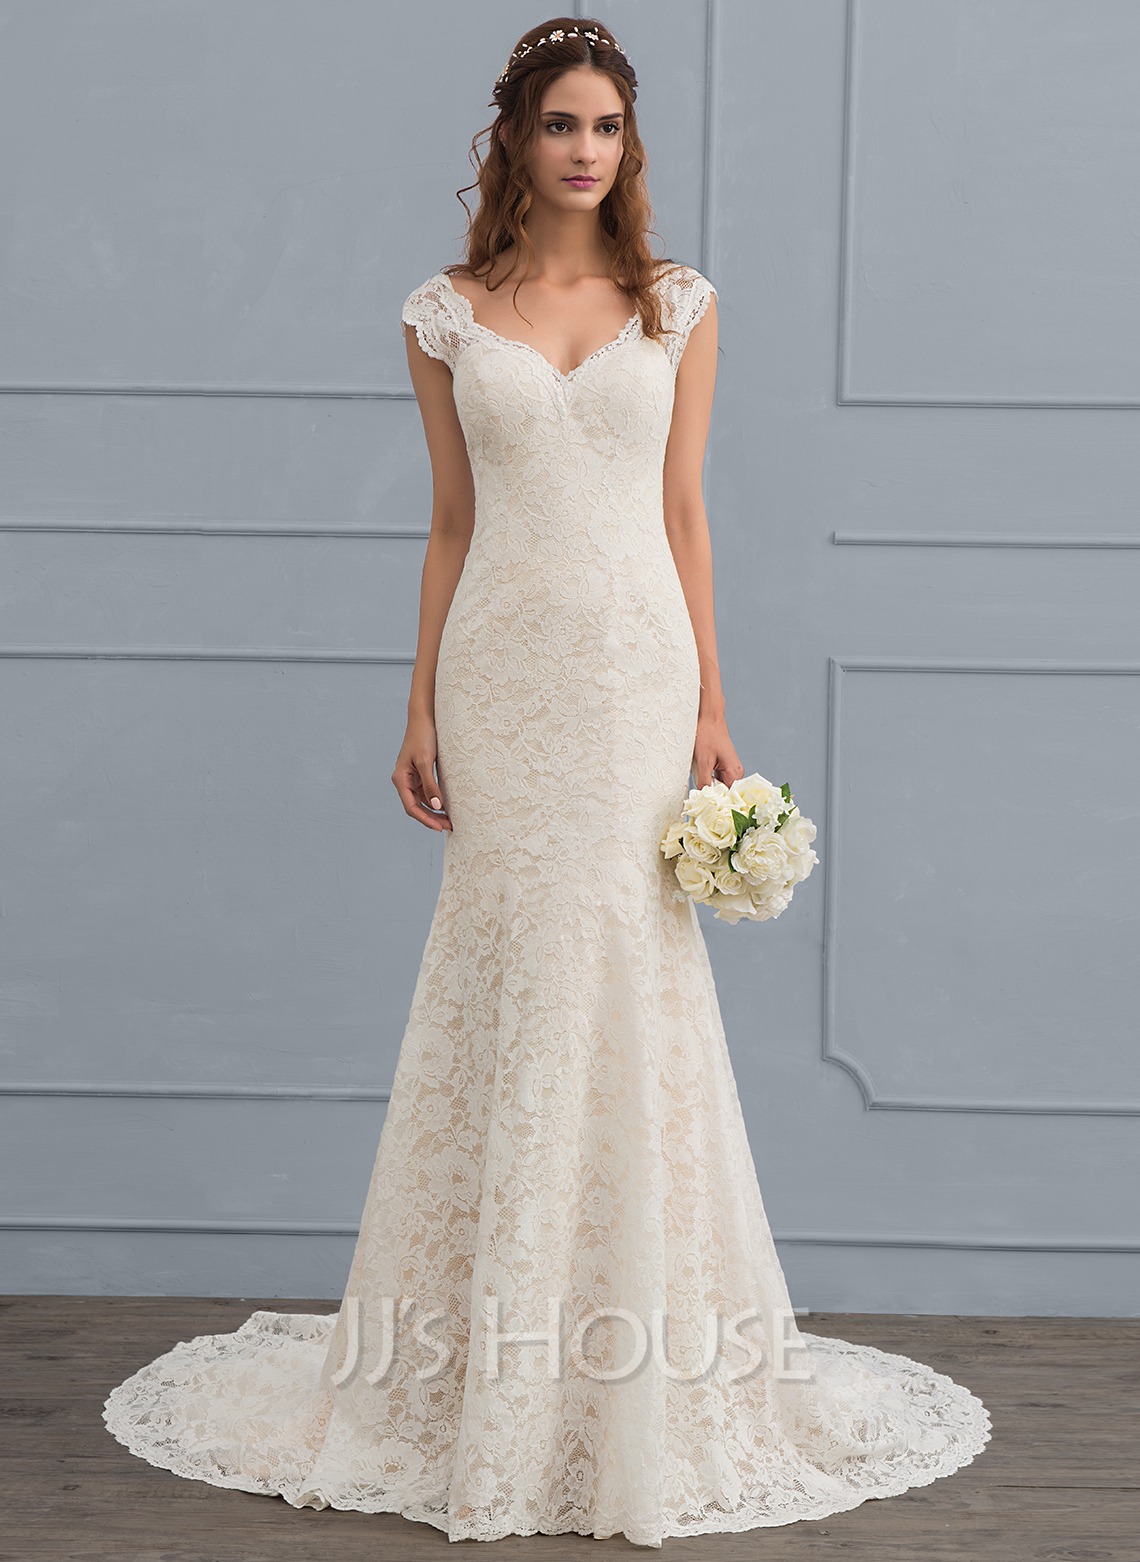 Trumpet/Mermaid V-neck Court Train Lace Wedding Dress (002118442 ...